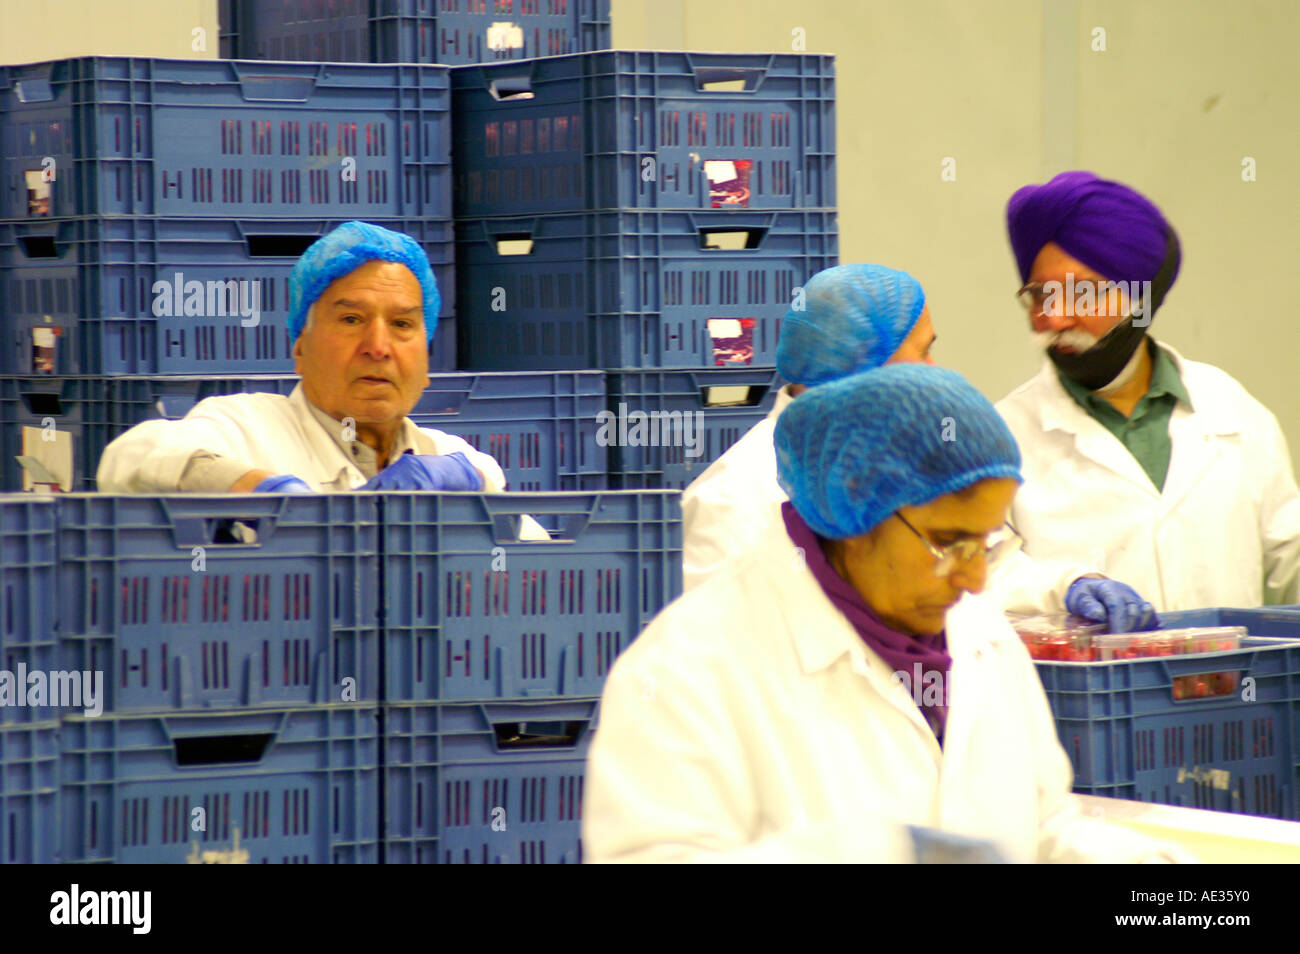 Desperate migrant workers in packhouse, doing menial work, England - Stock Image